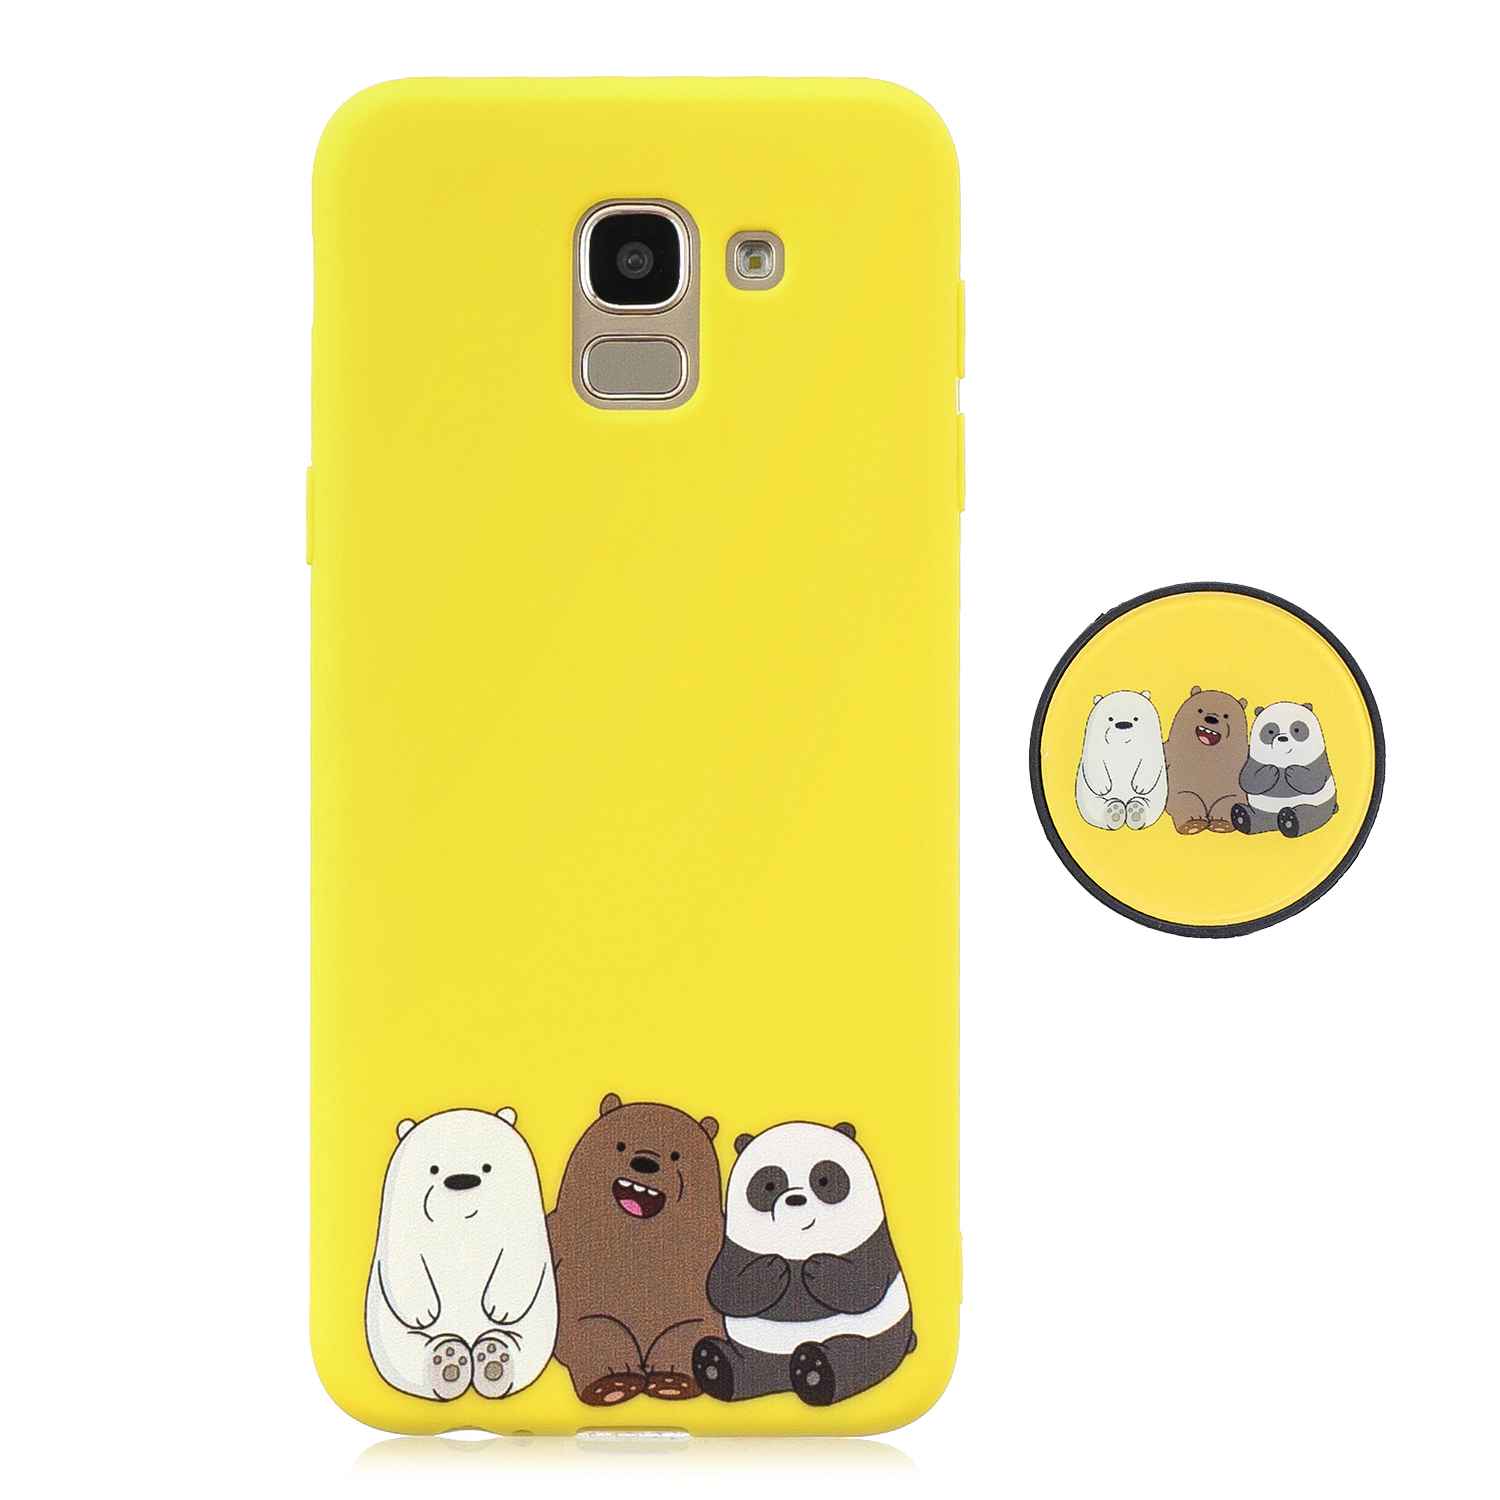 For Samsung J6 2018 Non-Slip TPU Bumper Case Shockproof Full-Body Protective Case Cover with Adjustable Bracket 7